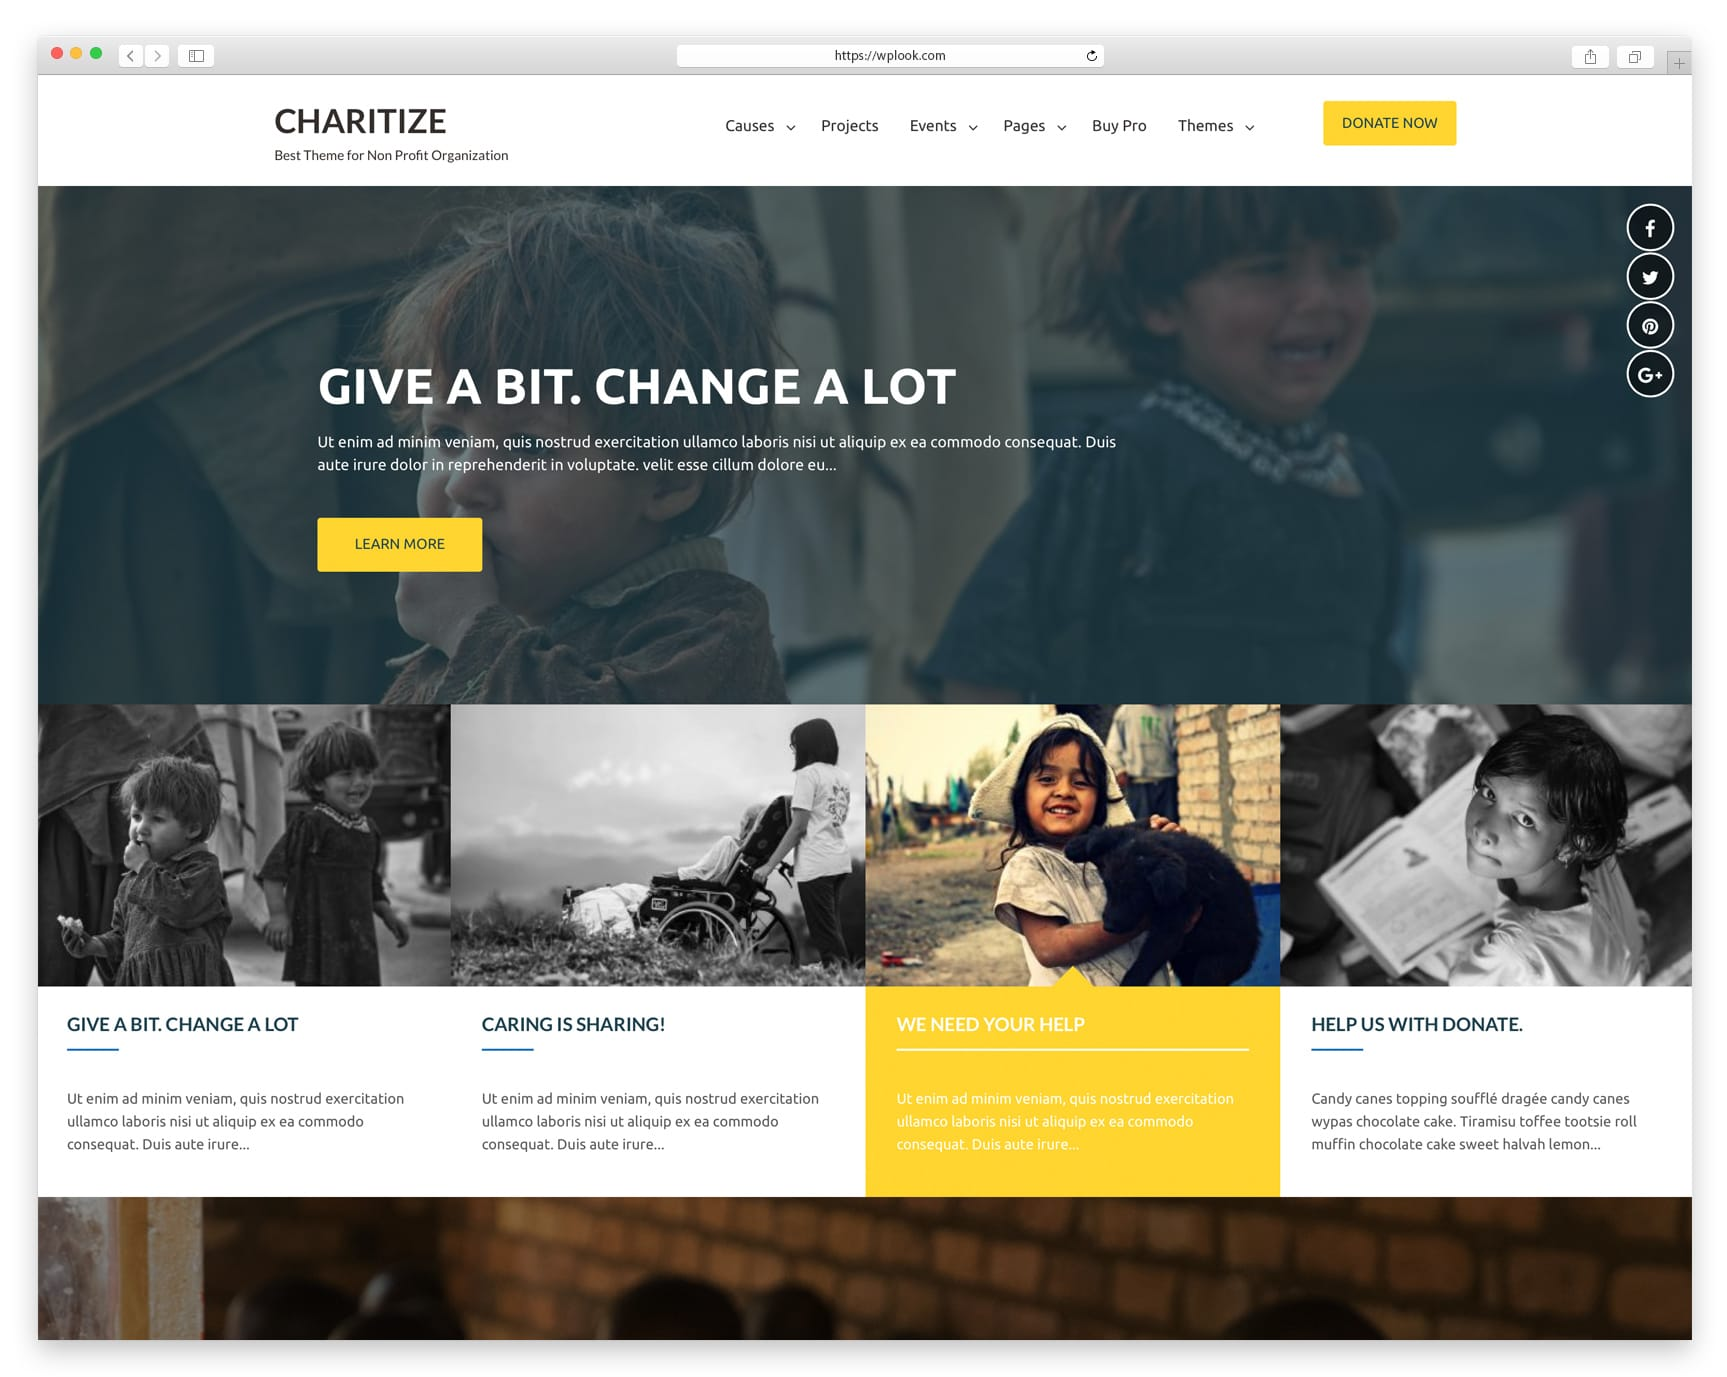 2019 Best Free WordPress Themes for Charity/Nonprofit - WPlook Themes